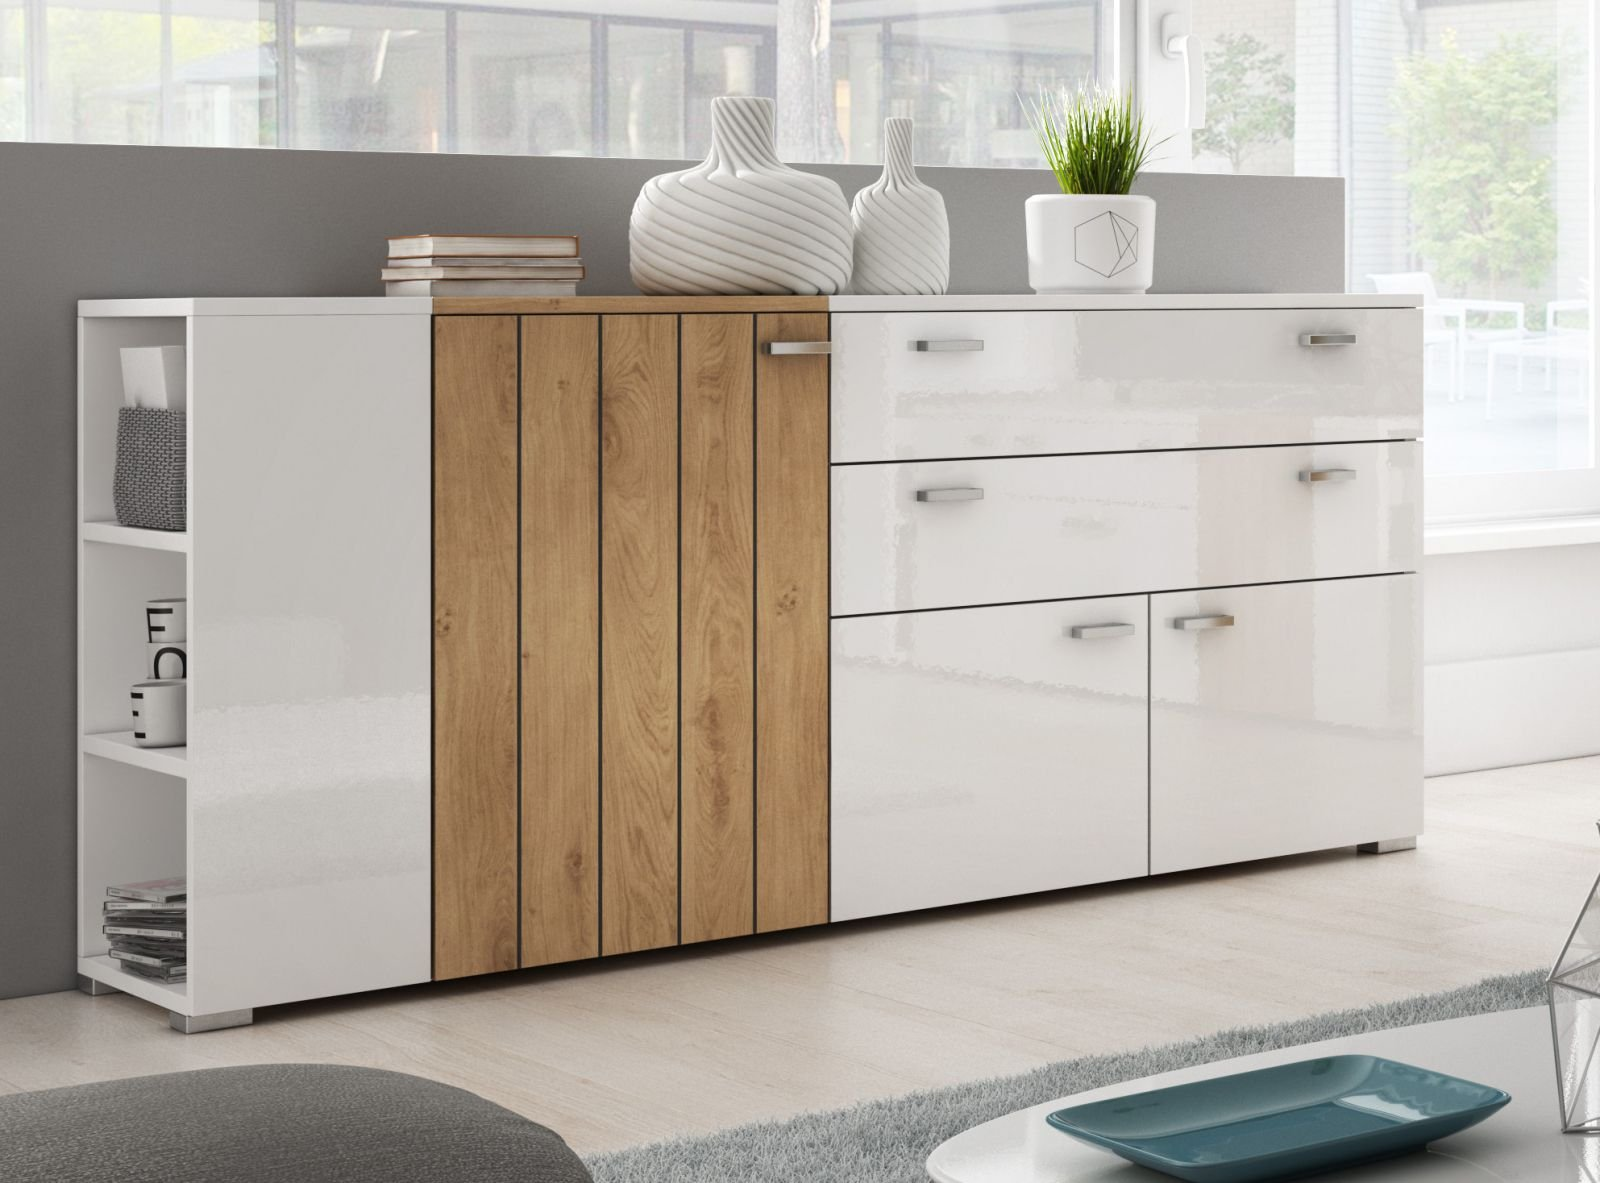 GENTLE Collection SIDEBOARD – European design 3-Door Sideboard with 2 Drawers and lateral open shelves – Elegant Glossy finish (White and Beaufort Oak)